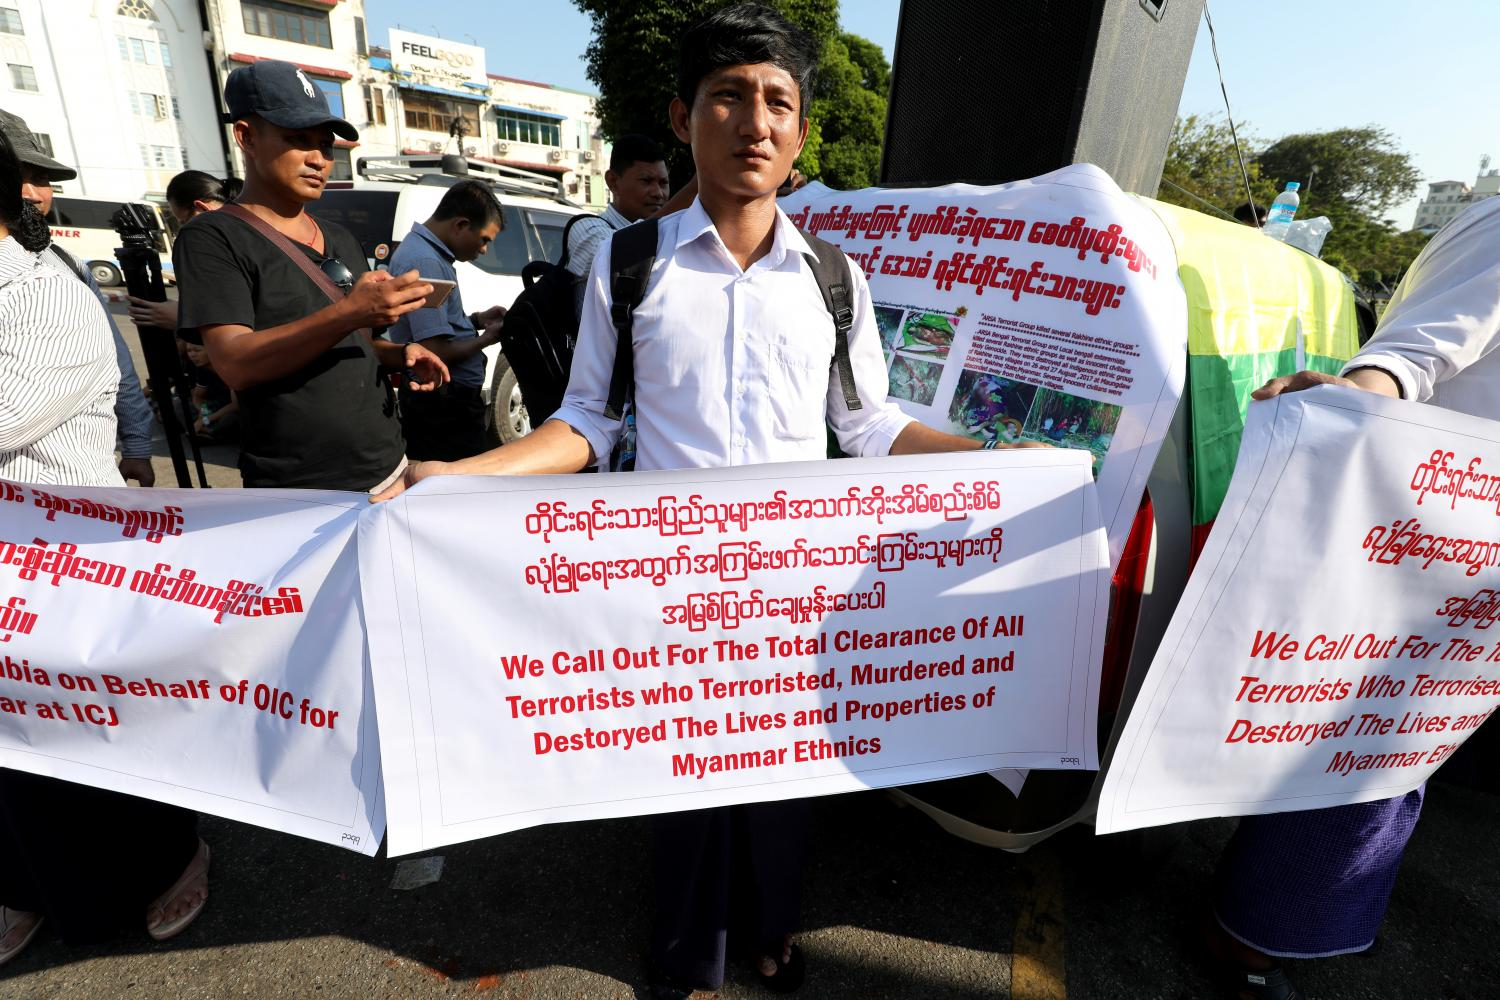 Left  Nationalists gather to protest in Yangon last month against The Gambia and the Organisation of Islamic Cooperation (OIC) for accusing Myanmar of committing genocide against the Rohingya minority in Rakhine state. Photos: Reuters